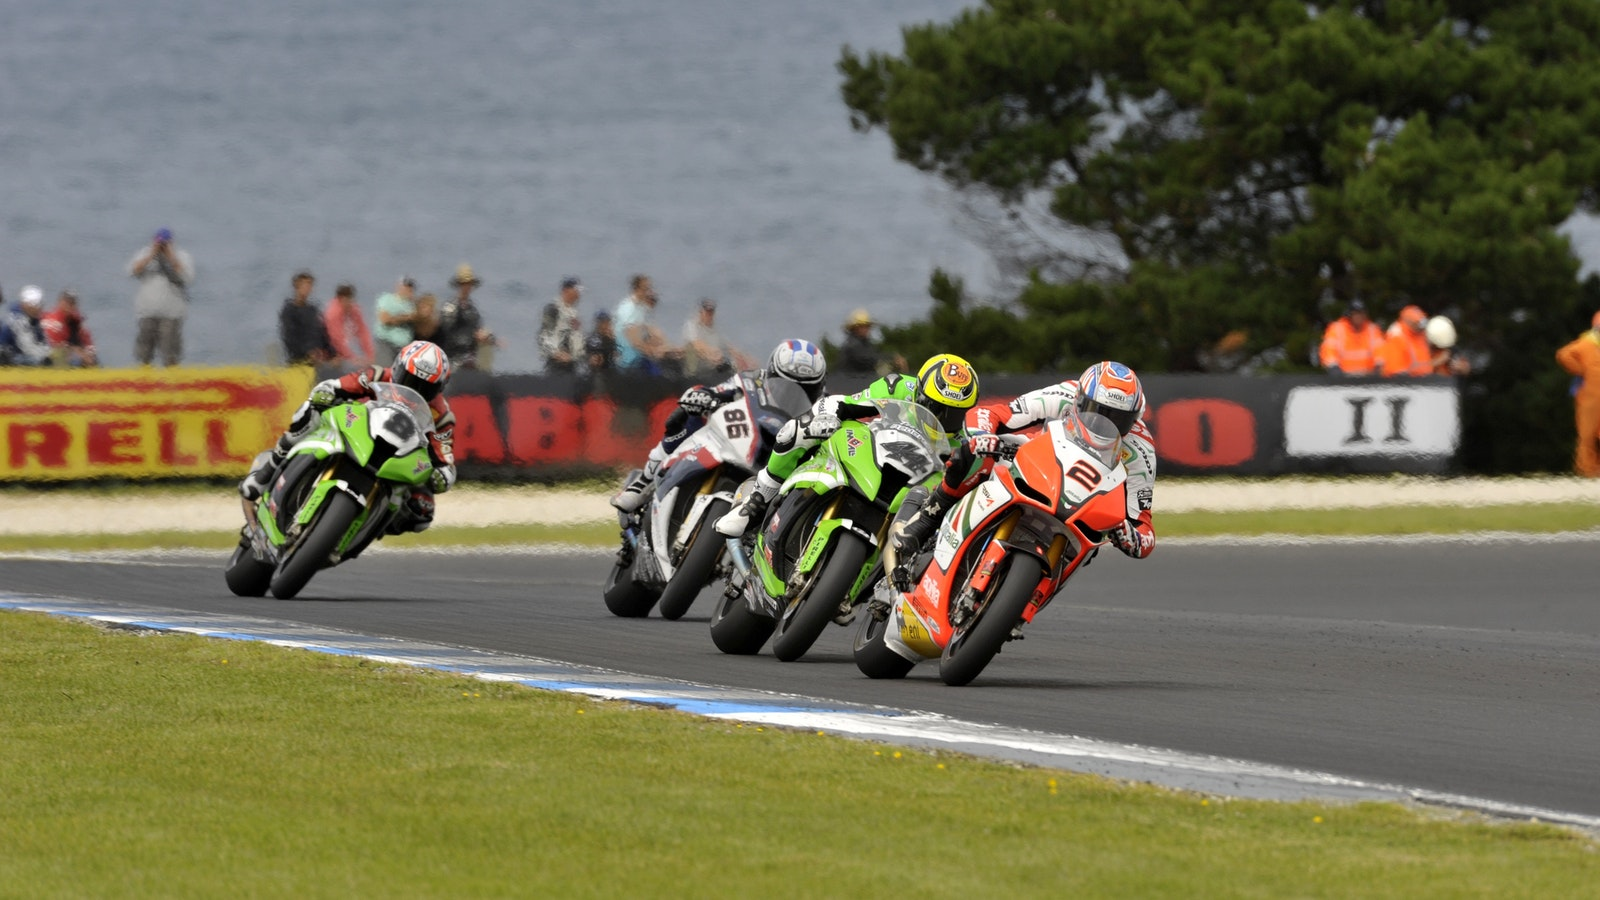 World Superbike Championships